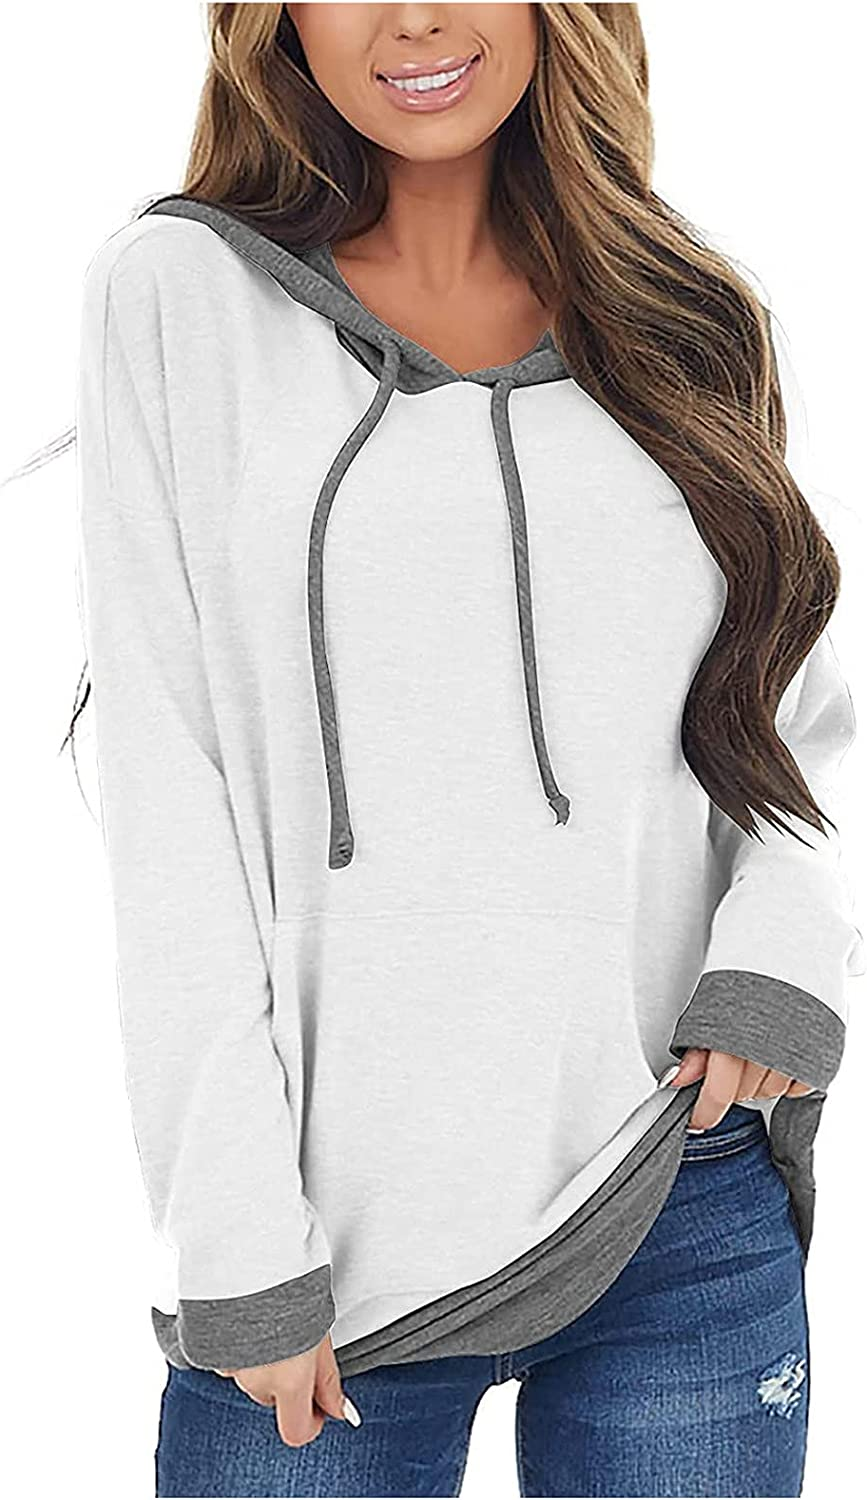 JPLZi Women's Long Sleeves Color Block Sweatshirts Hoodie Pullover Casual Drawstring Cute Tunic Tops Active Hooded Outwear